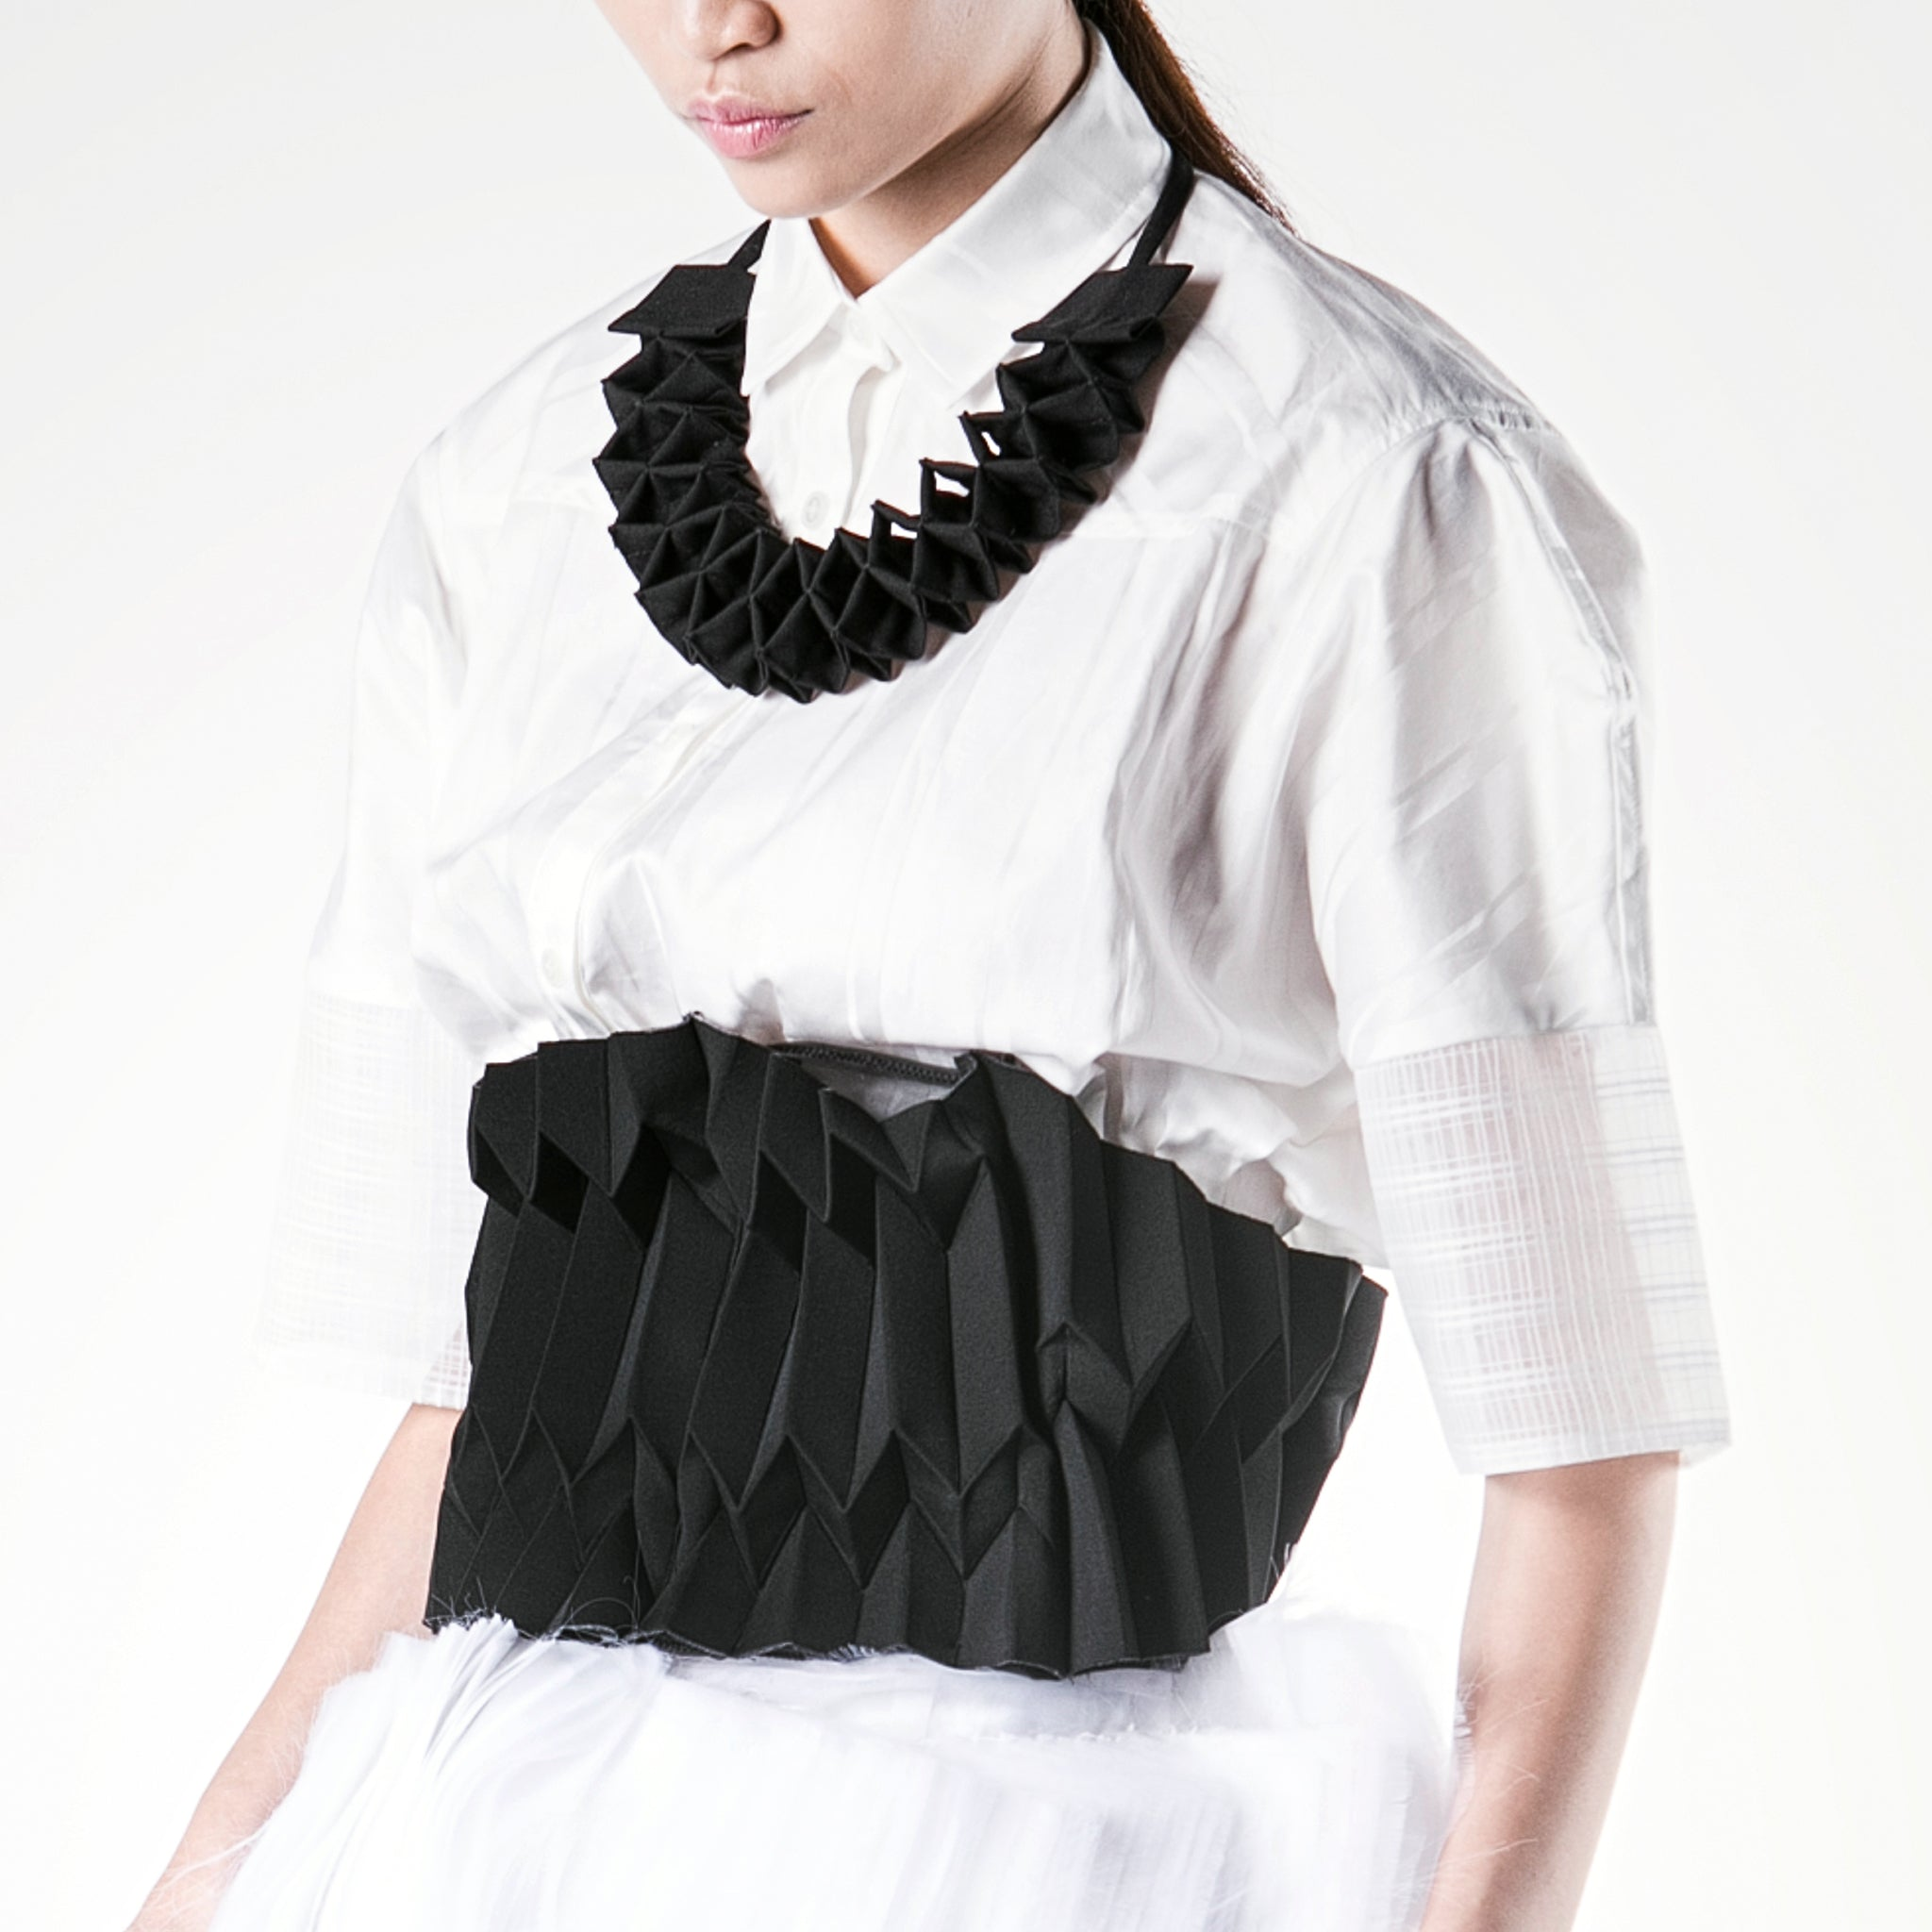 Smocking Collar Necklace - phenotypsetter, fashion designer label, unisex, women, accessories